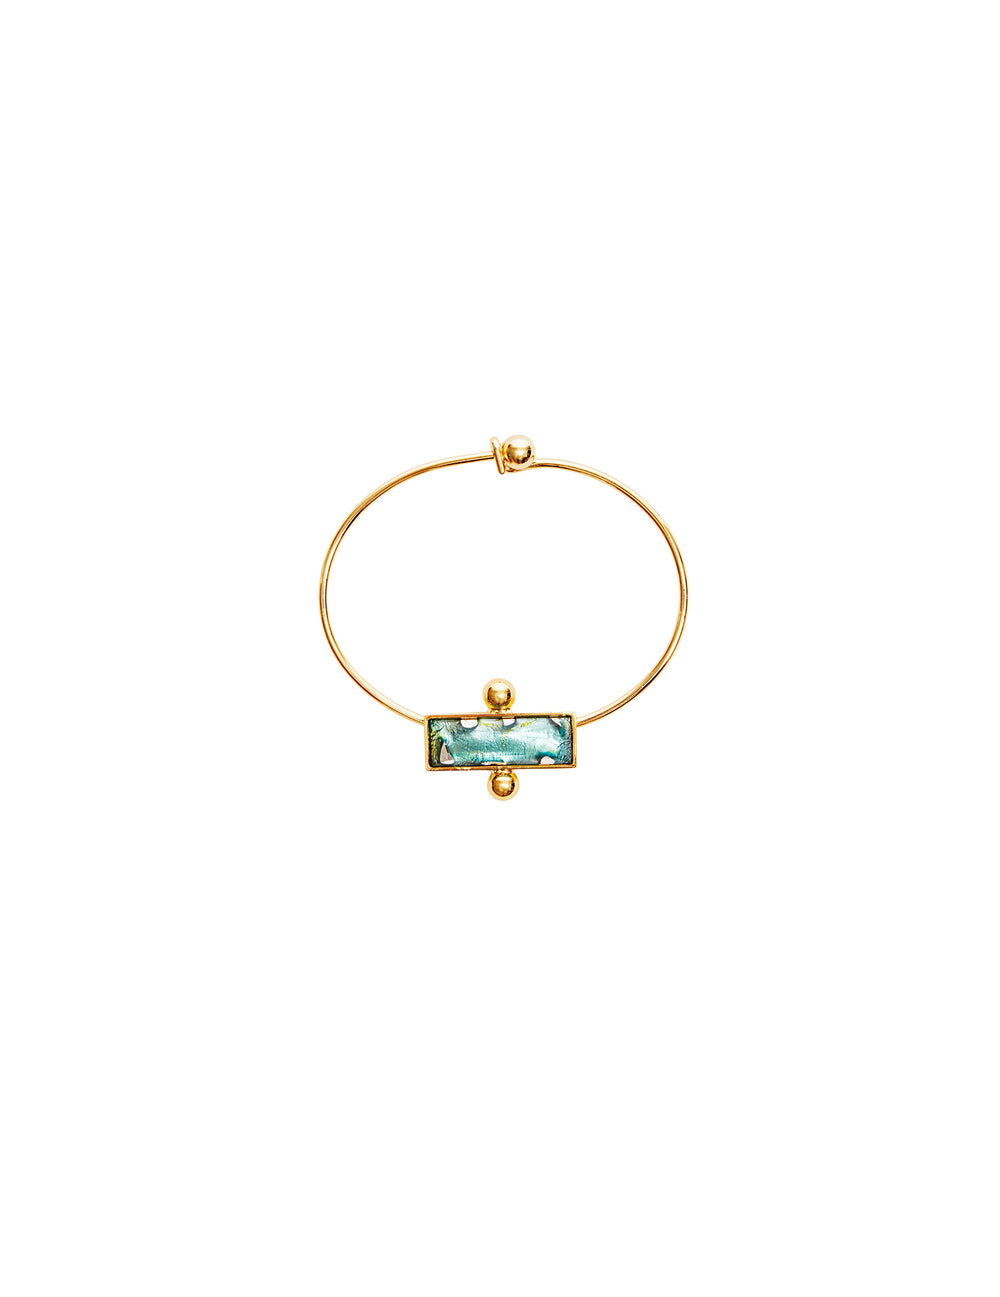 Tilly green metal bracelet